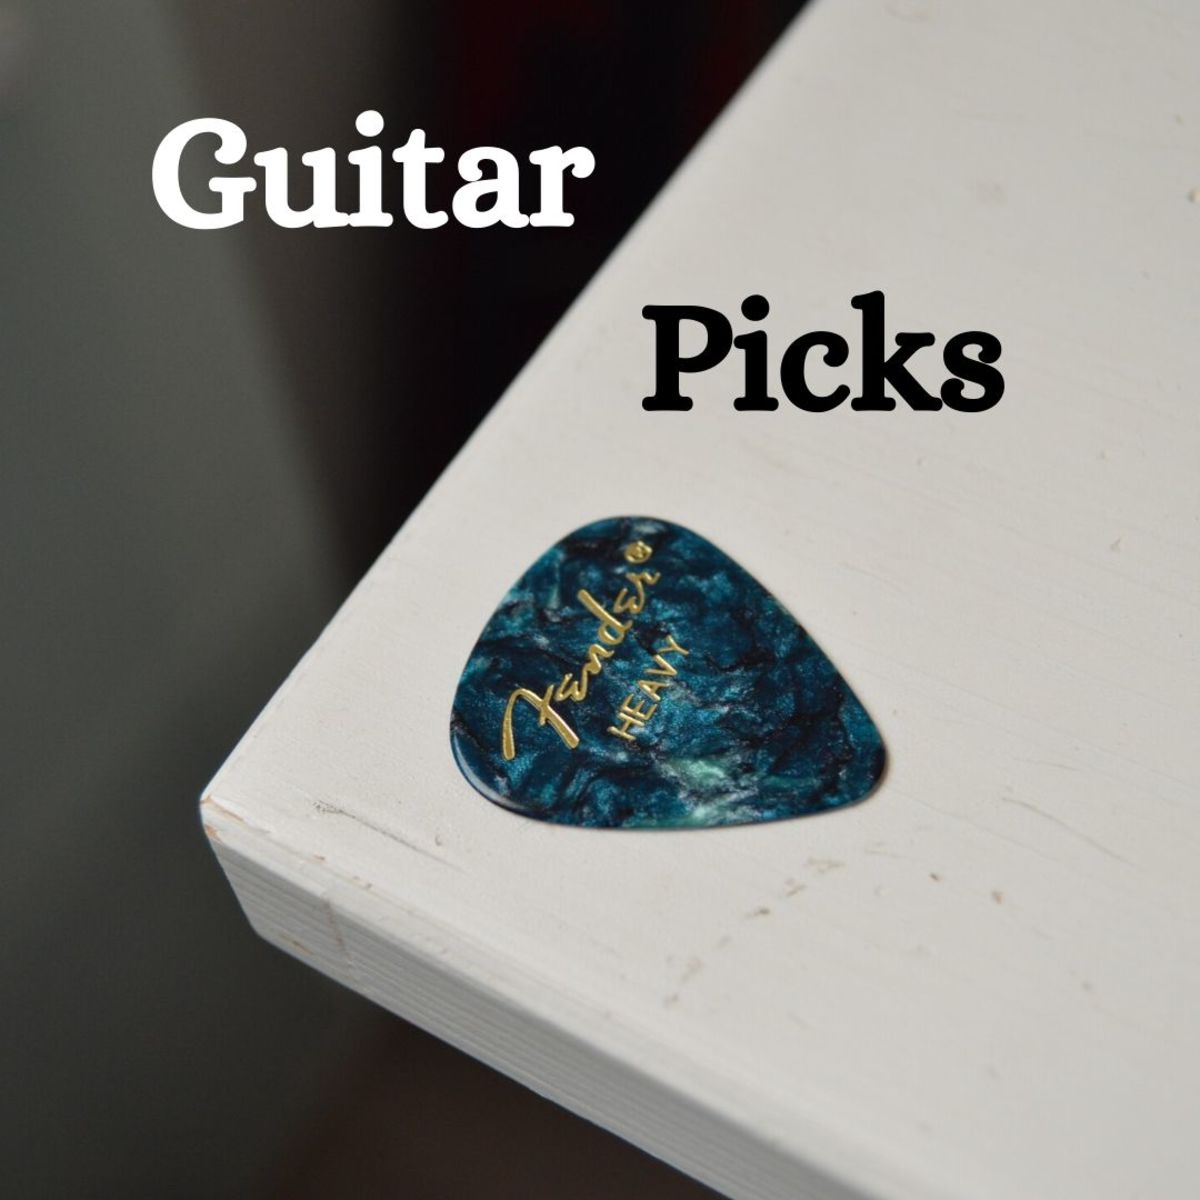 If you play guitar, you've probably already started a collection of these!